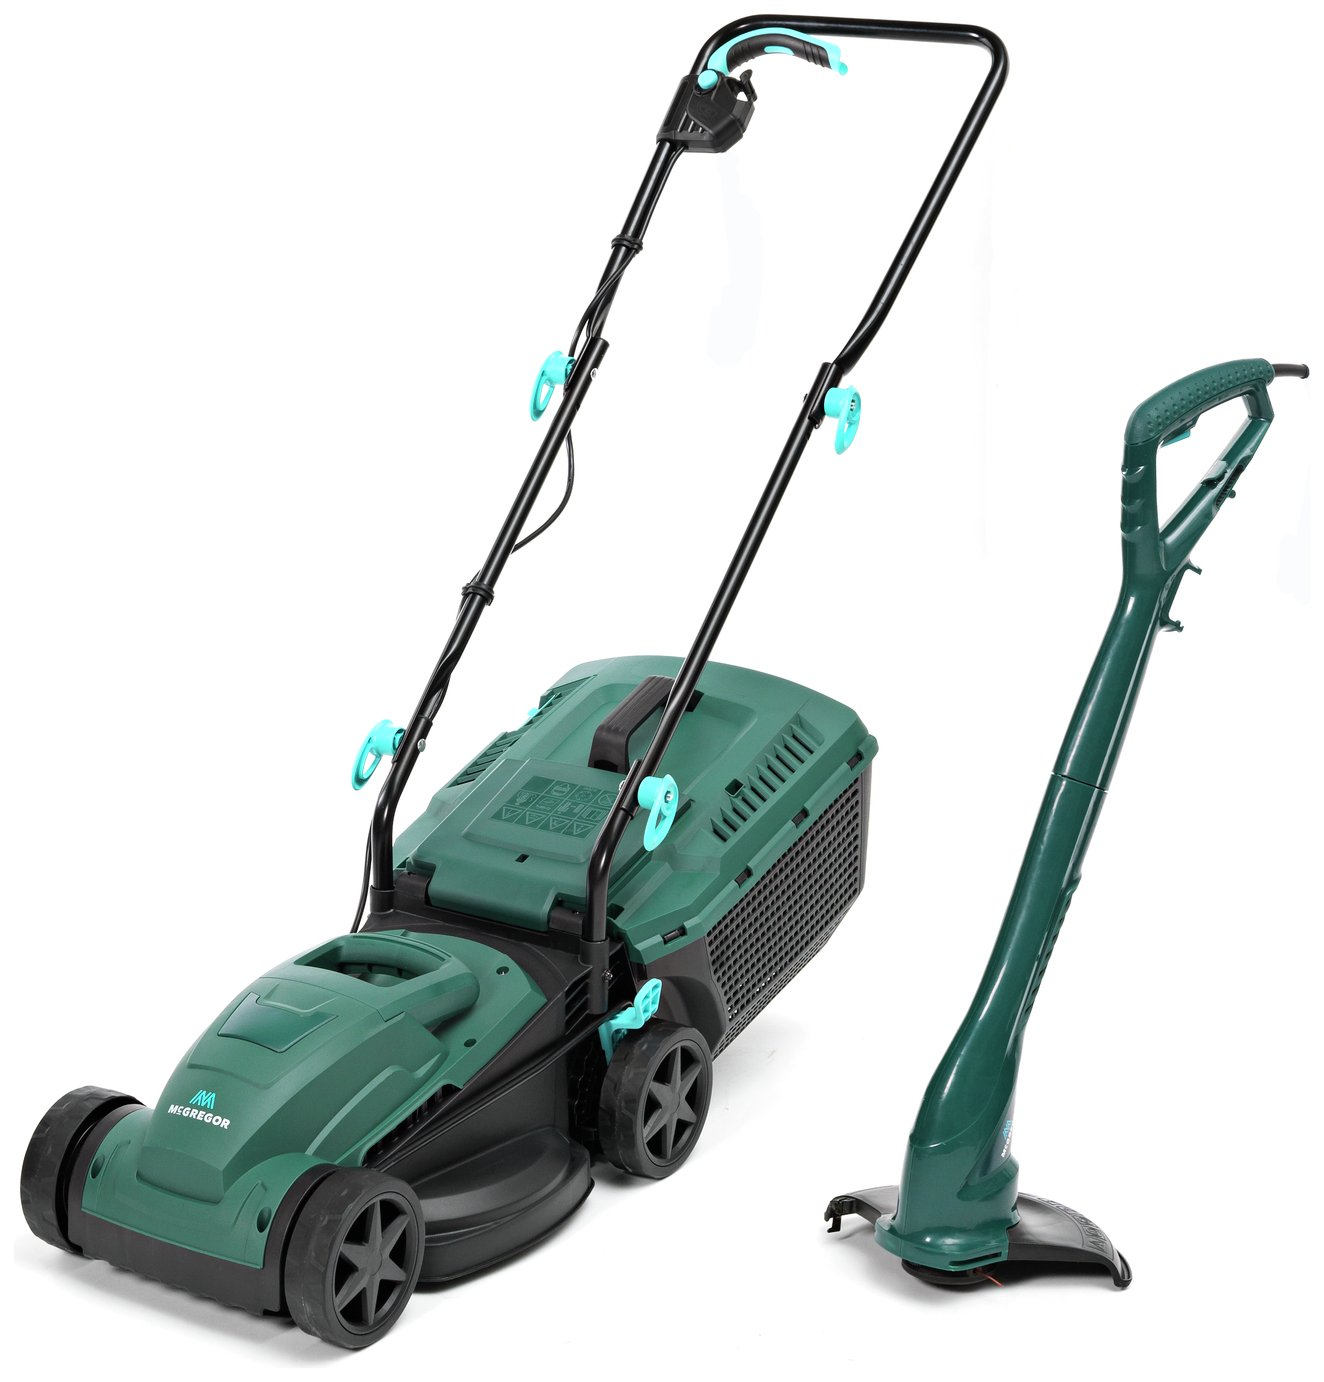 McGregor 33cm Corded Rotary Lawnmower 1200W and Trimmer 250W